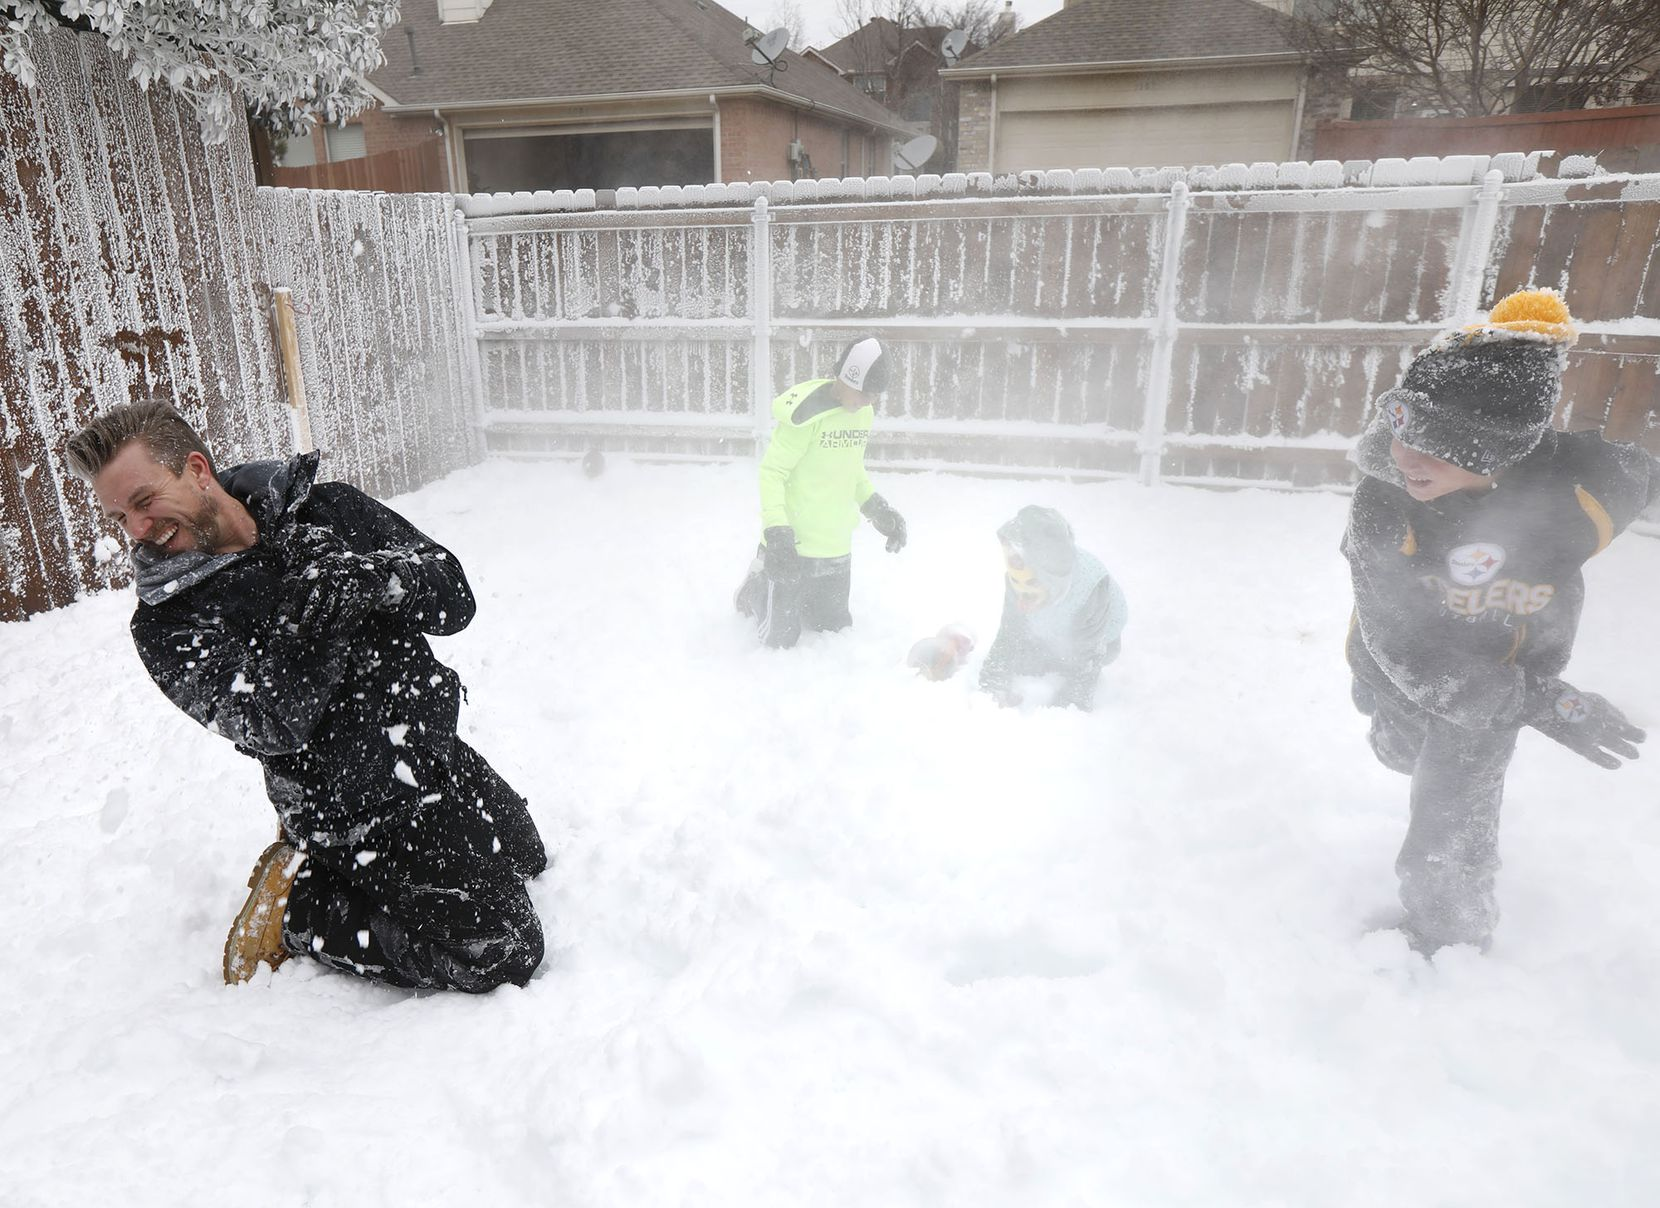 Jeramy Melchiorre (left), gets hit with a snowball thrown by his son, Christian Melchiorre, 9, while his son Jude Melchiorre, 12, and his niece, Emmaline Gibson, 6, play in a winter wonderland he created using a power washer  that blows freezing water the makes snow in their Allen backyard.